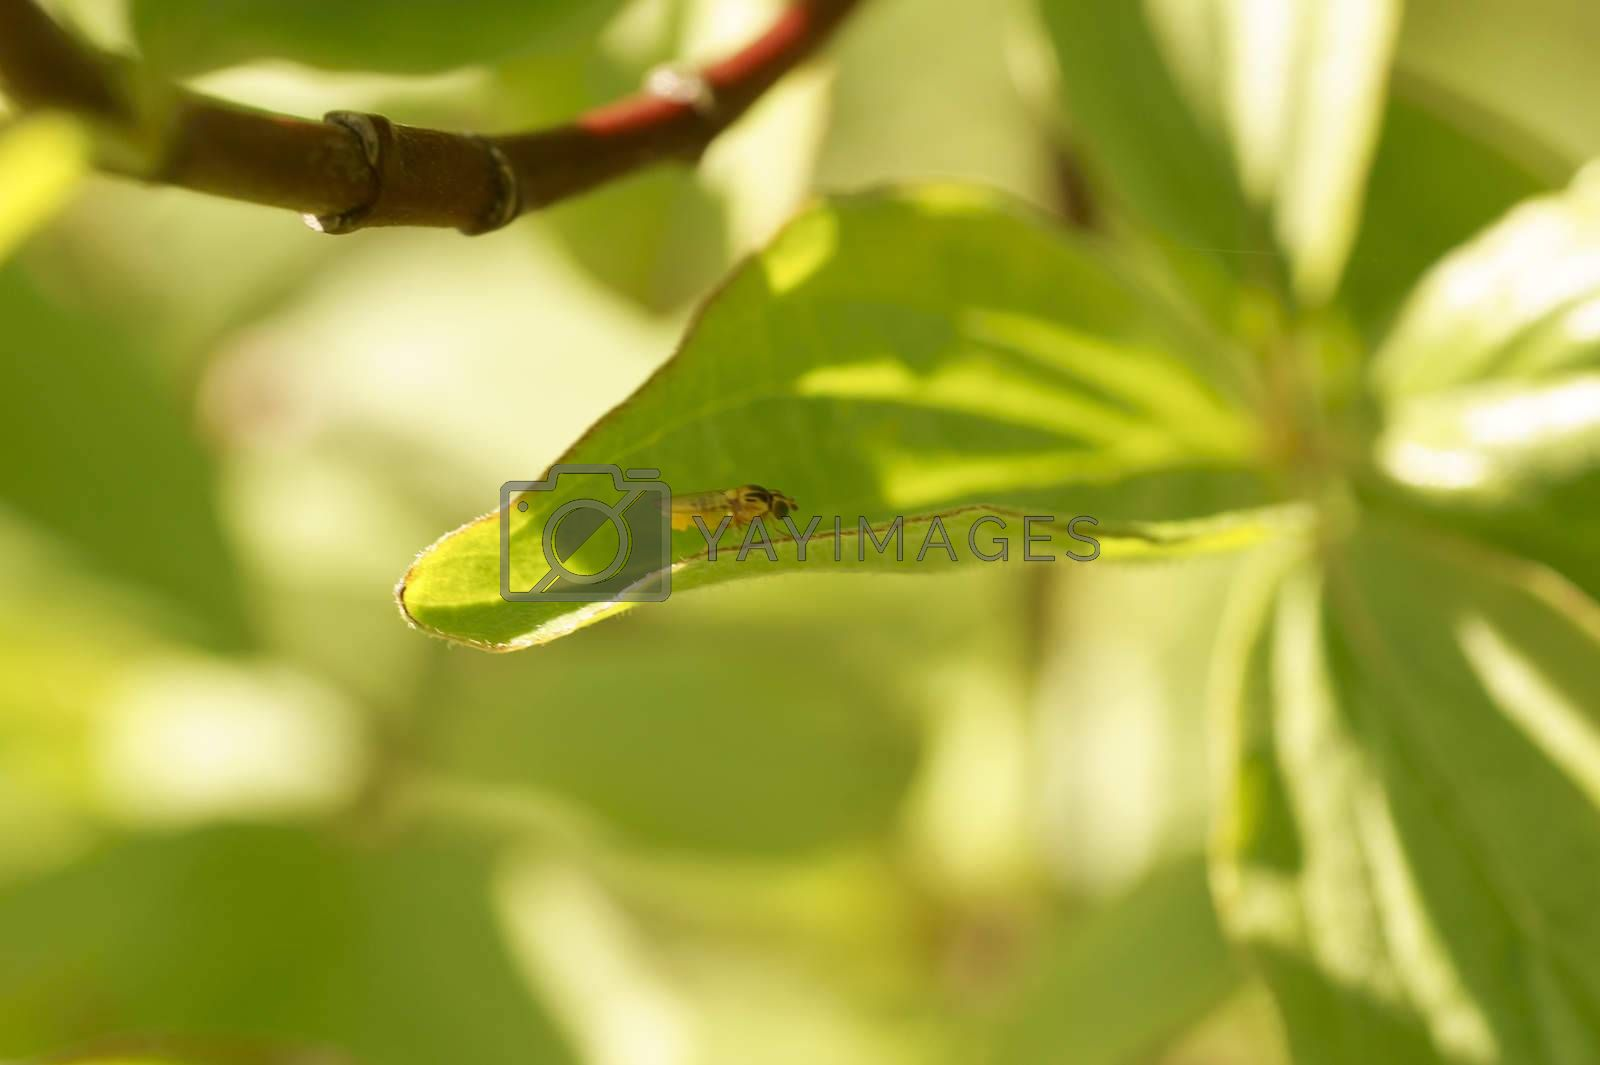 A young newly hatched fly sits between the bright green leaves of a plant.